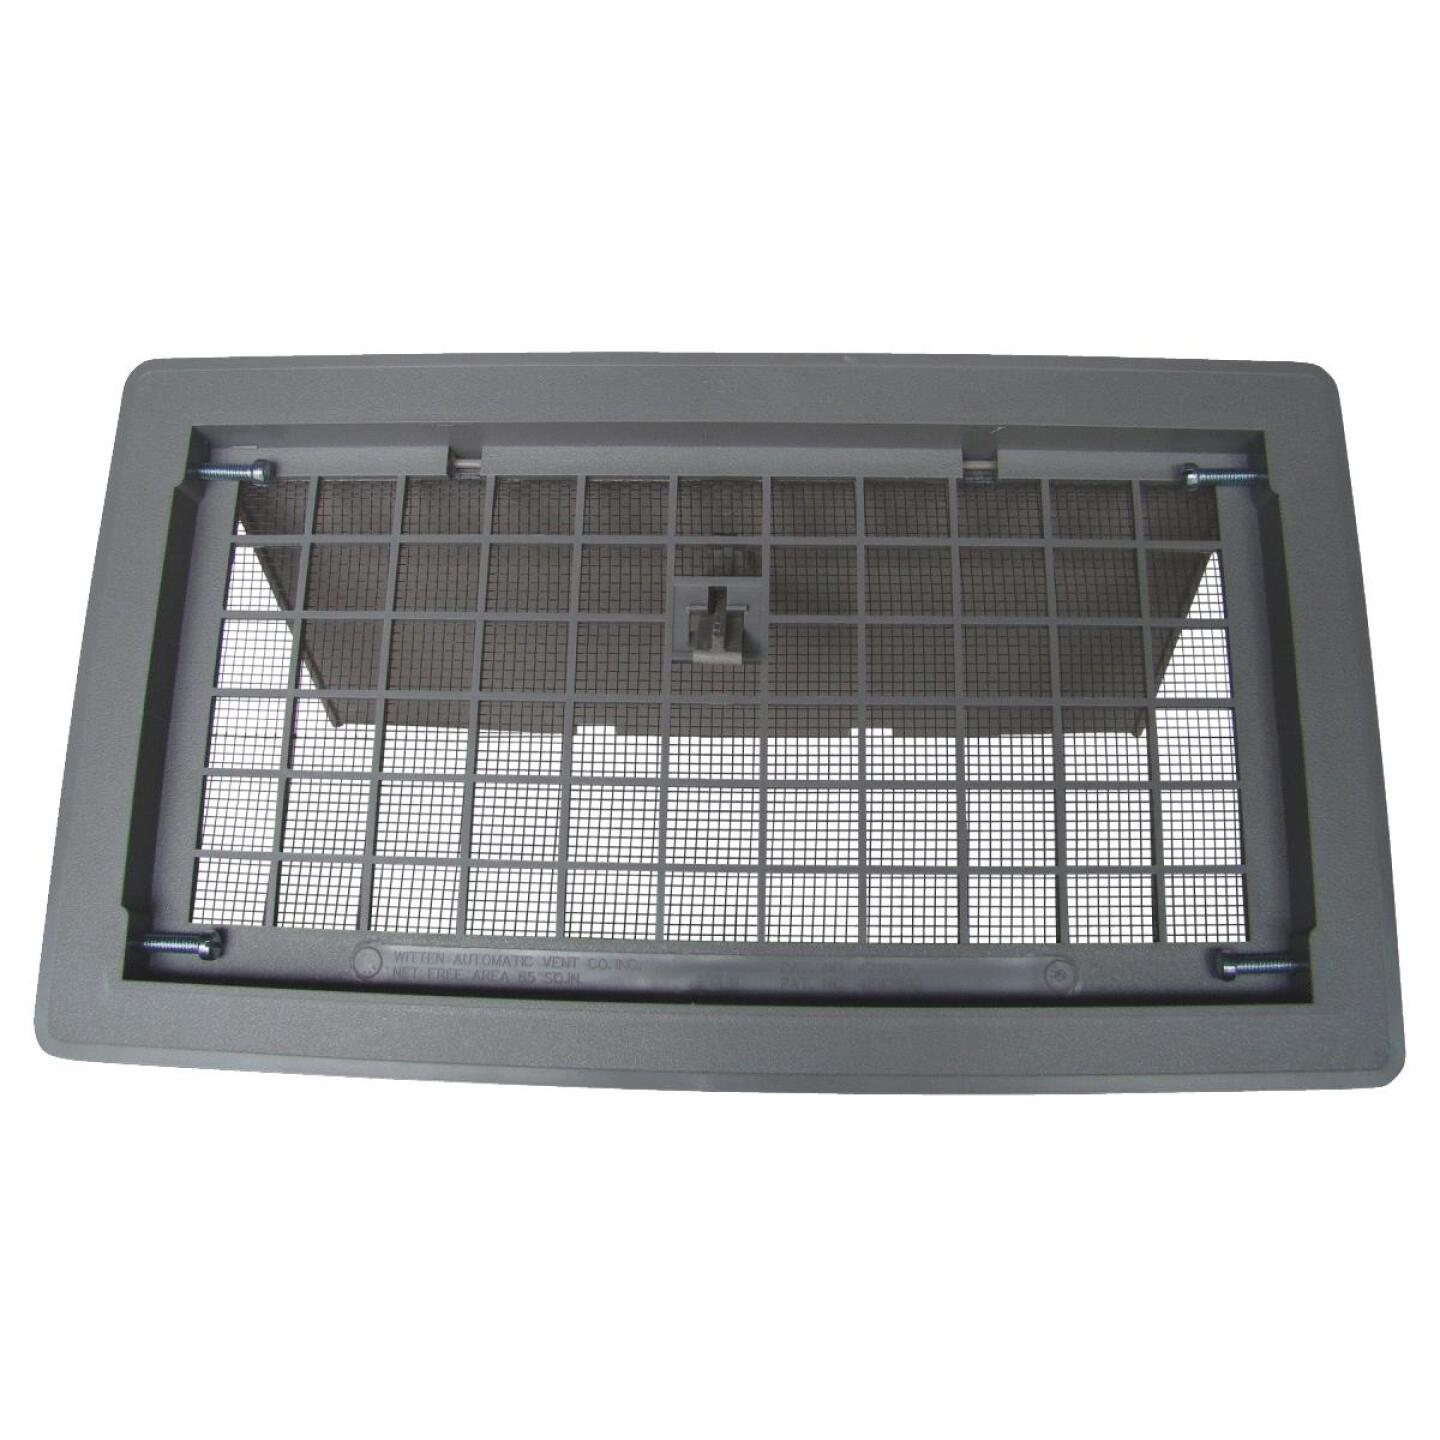 Witten 8 In. x 16 In. Gray Manual Foundation Vent with Damper Image 1